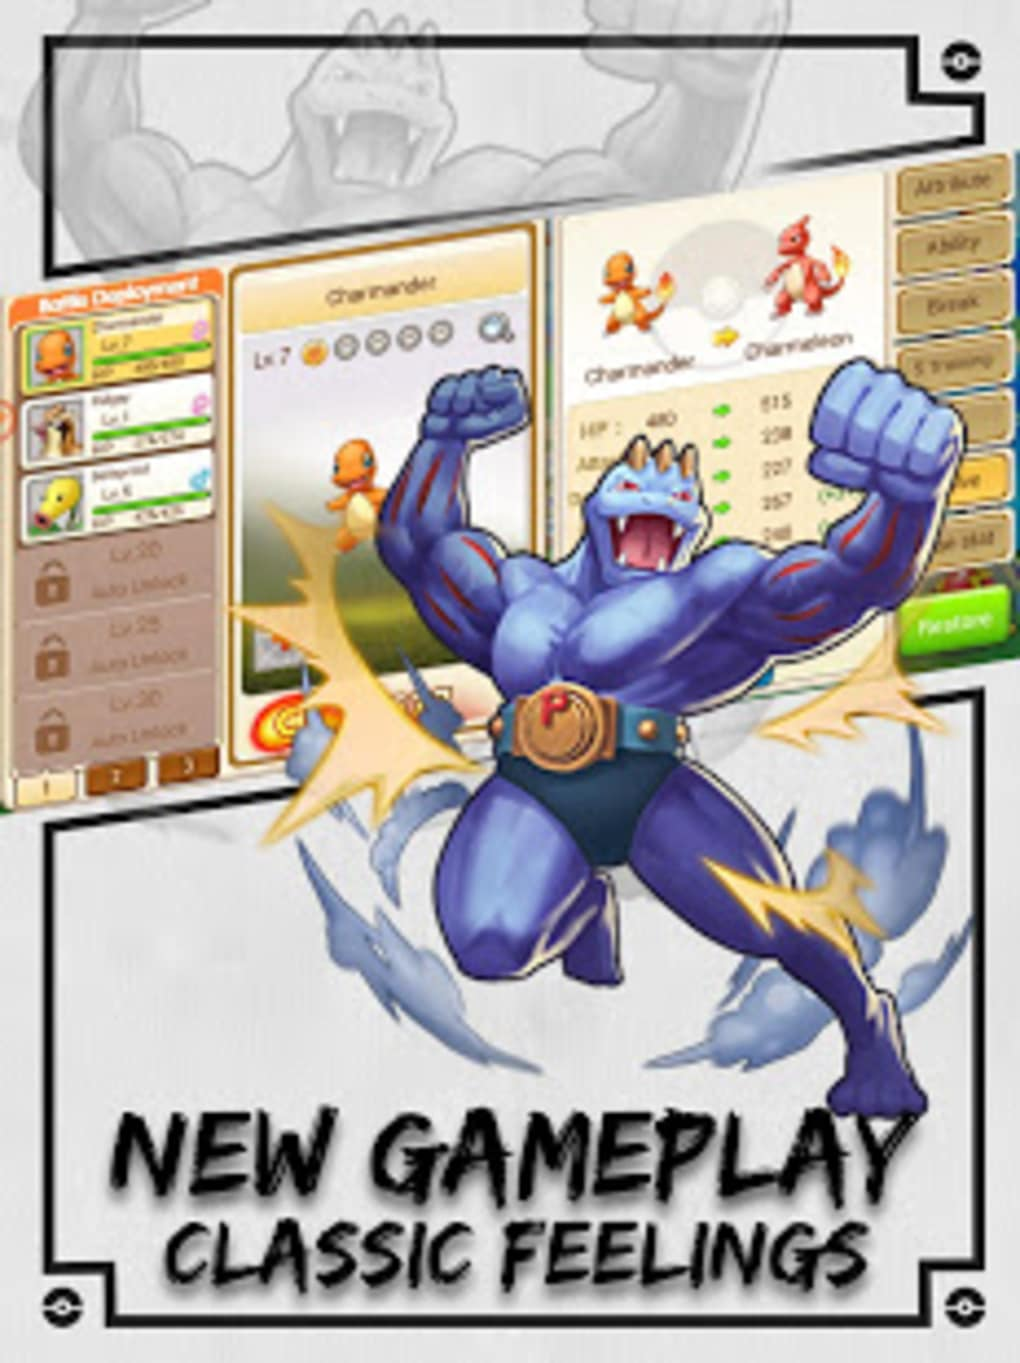 Pokeland War for Android - Download